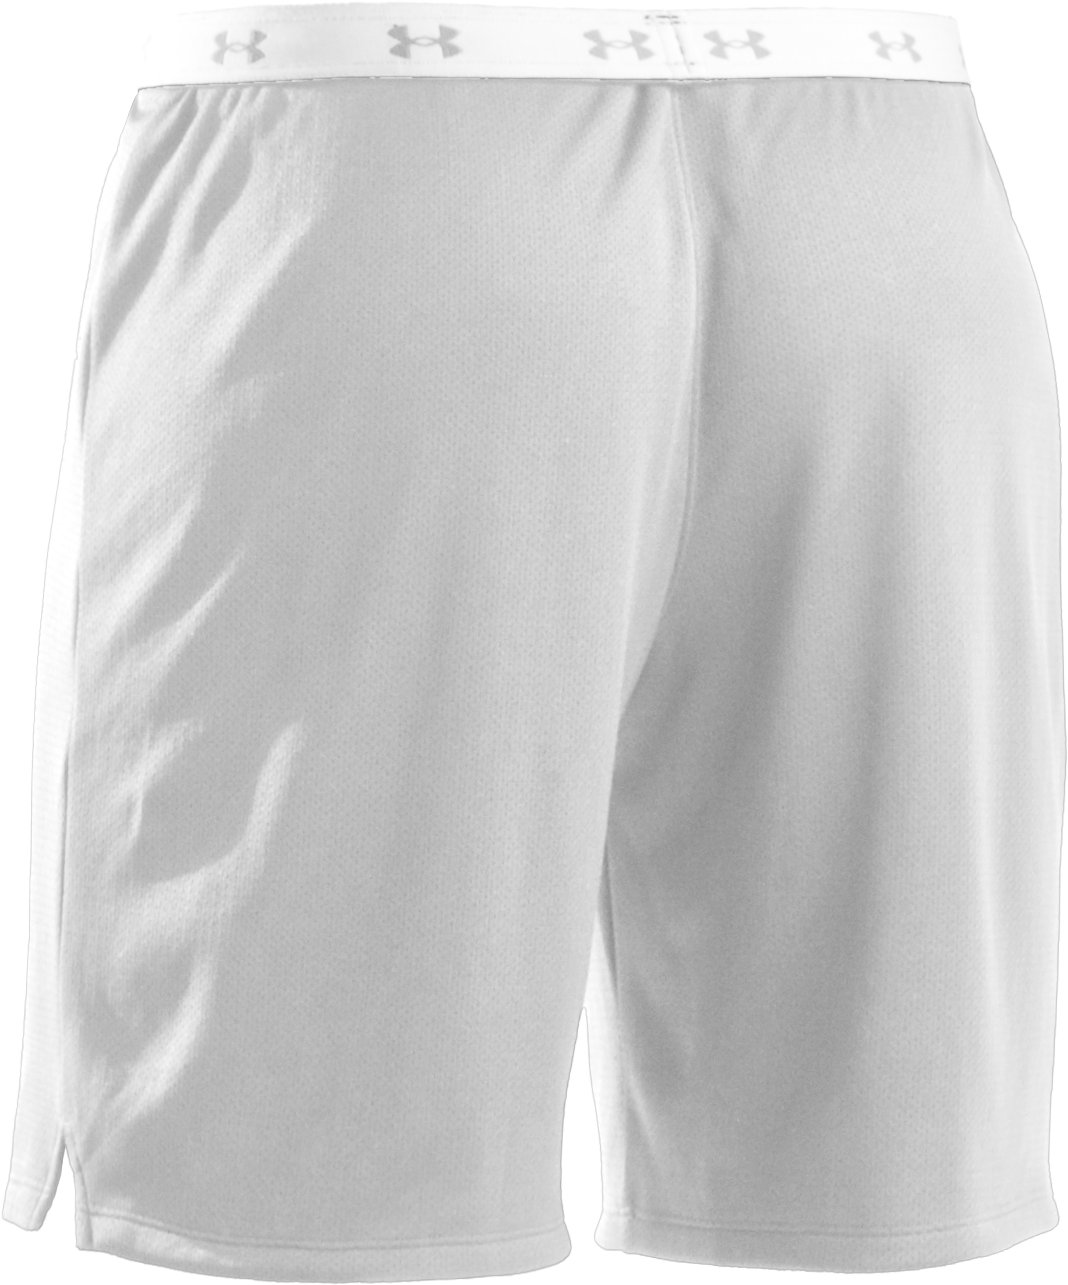 "Women's Dominate 8.5"" Short, White, undefined"